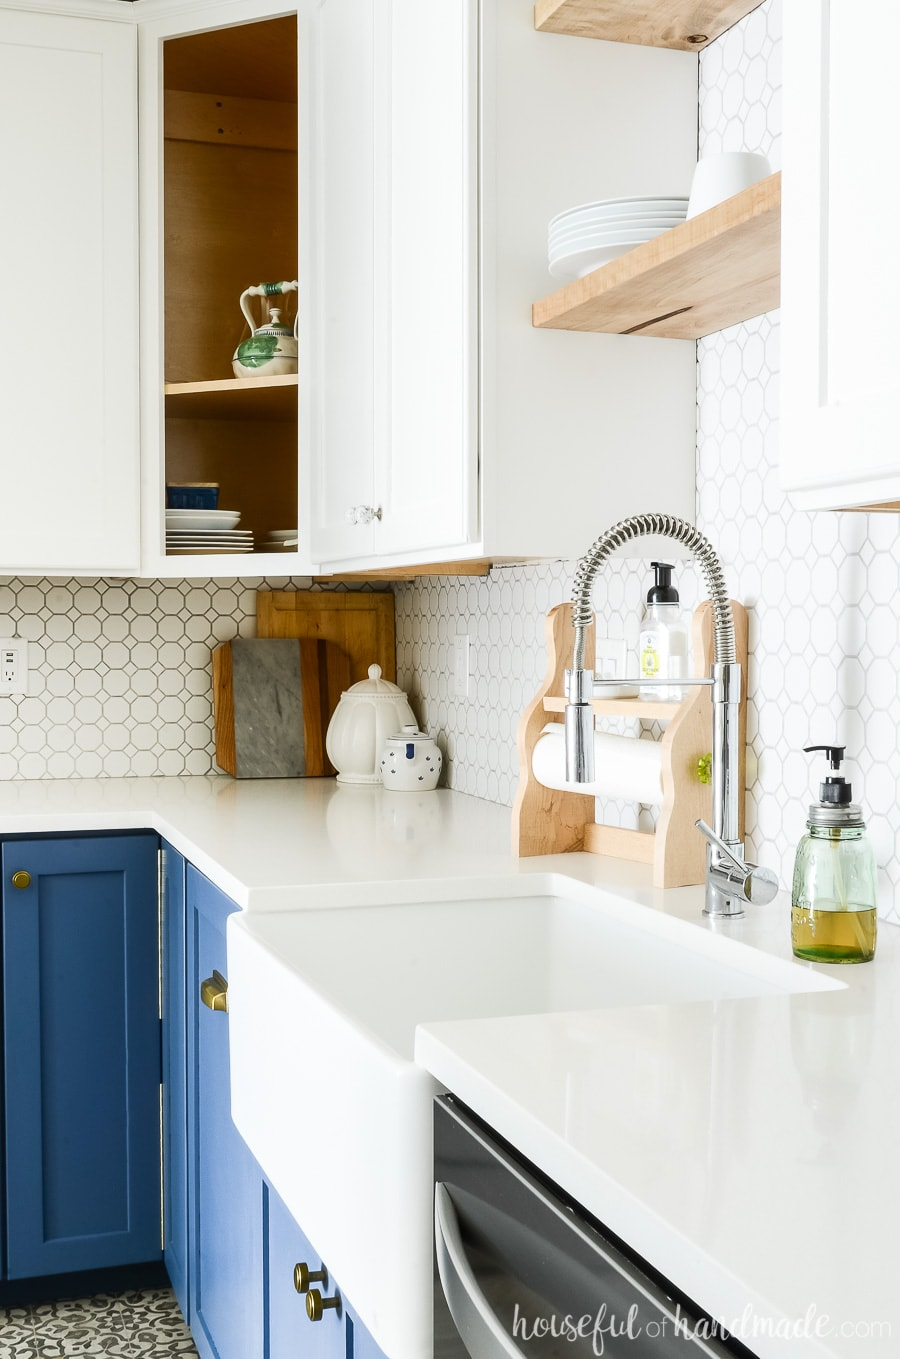 Kitchen remodel with white quartz countertops. Two tone kitchen cabinets with blue base cabinets and white upper cabinets.